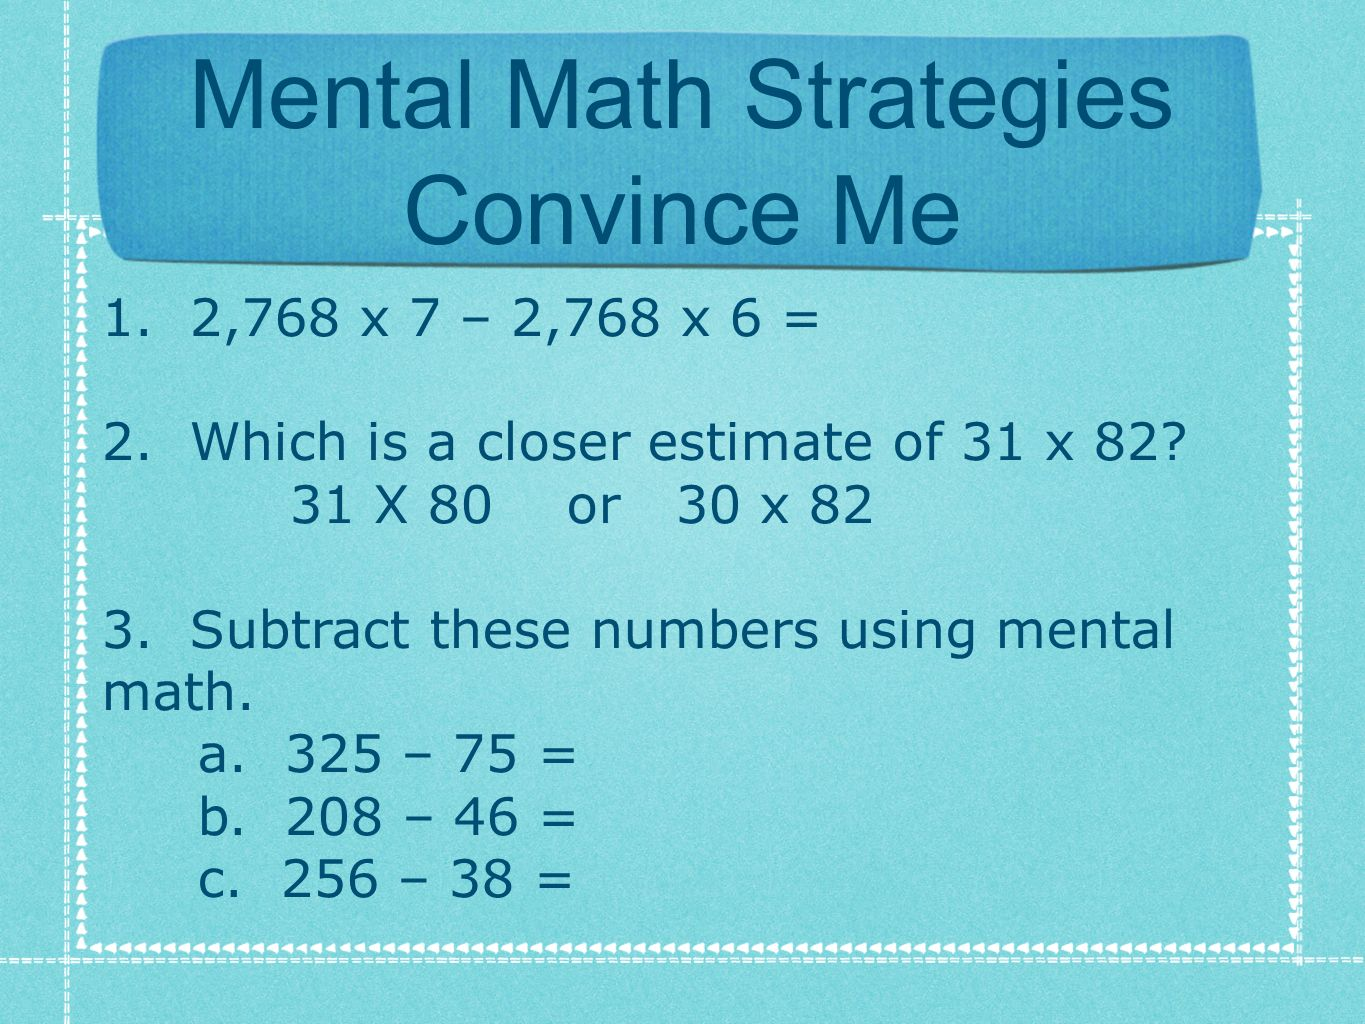 Mental Math Strategies Convince Me 1. 2,768 x 7 – 2,768 x 6 = 2. Which is a closer estimate of 31 x 82? 31 X 80 or 30 x 82 3. Subtract these numbers u